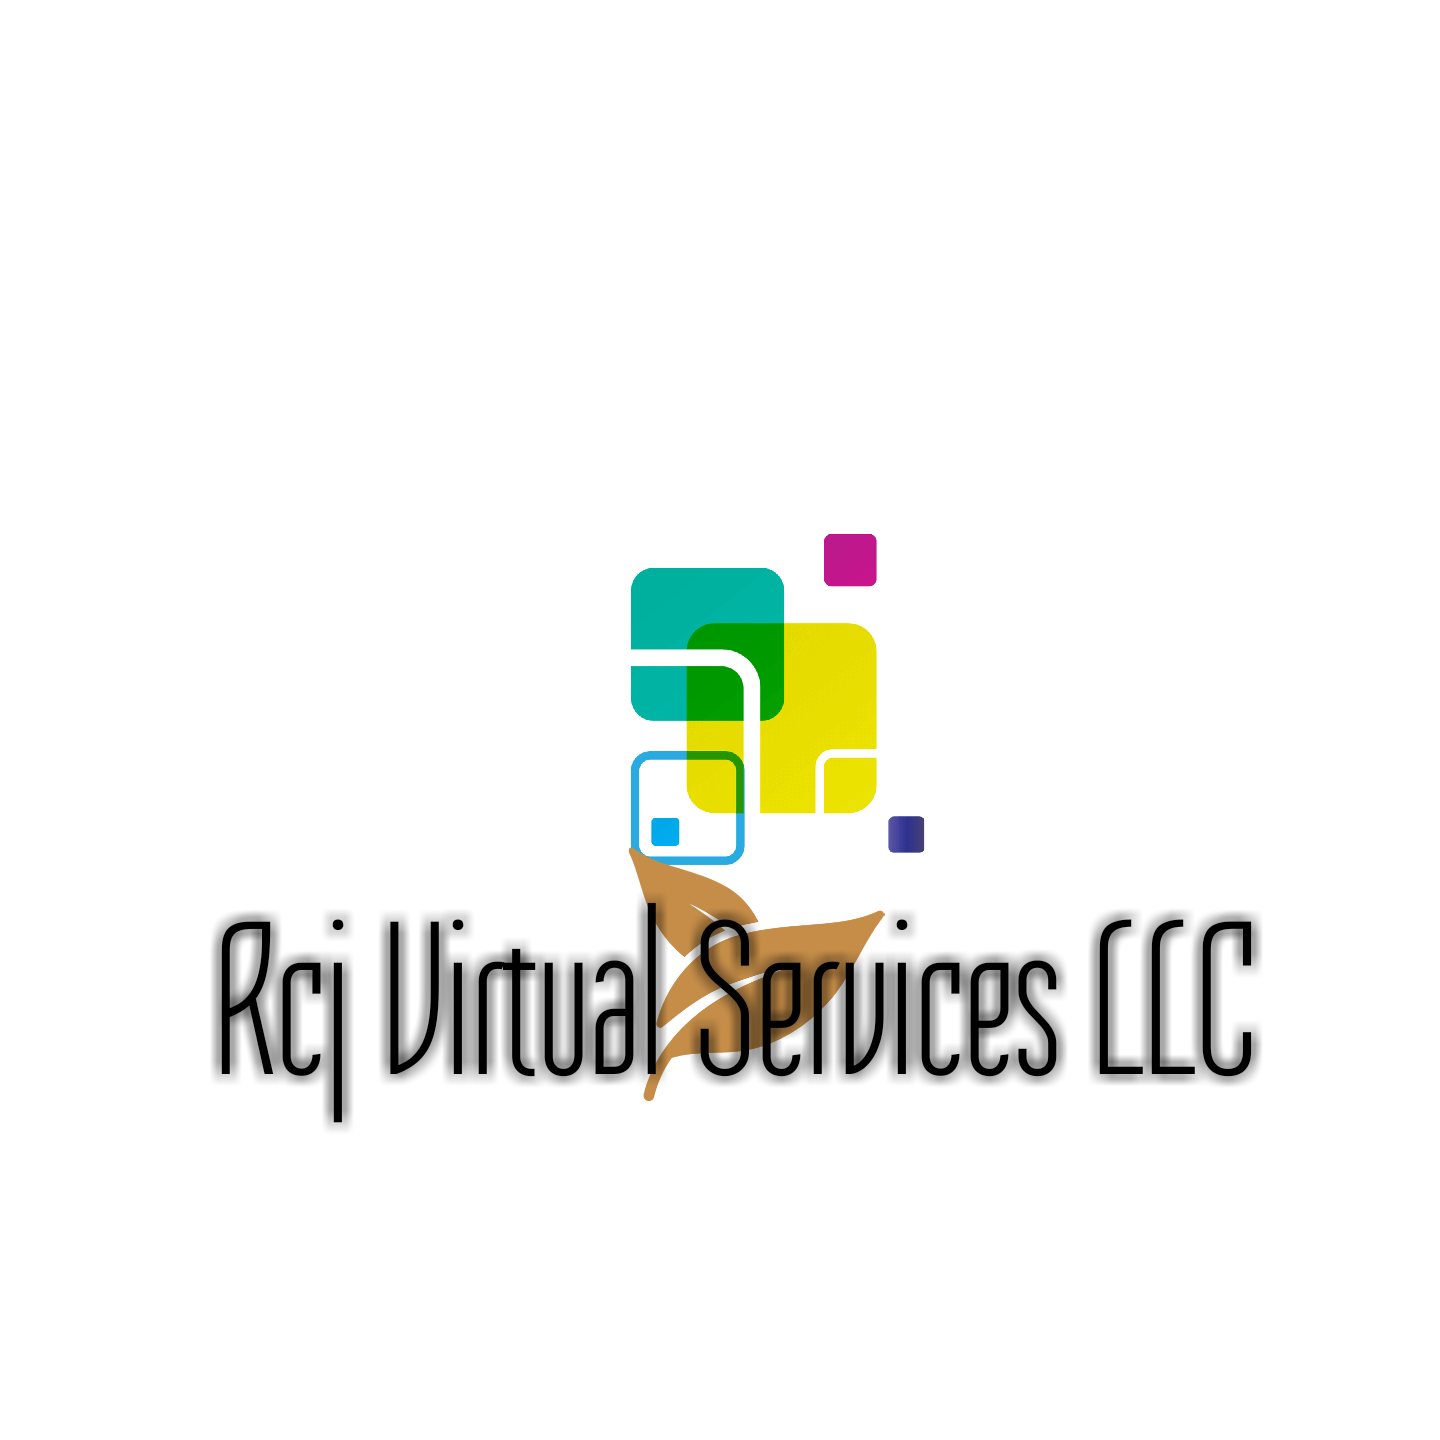 Rcj Virtual Services LLC primary image